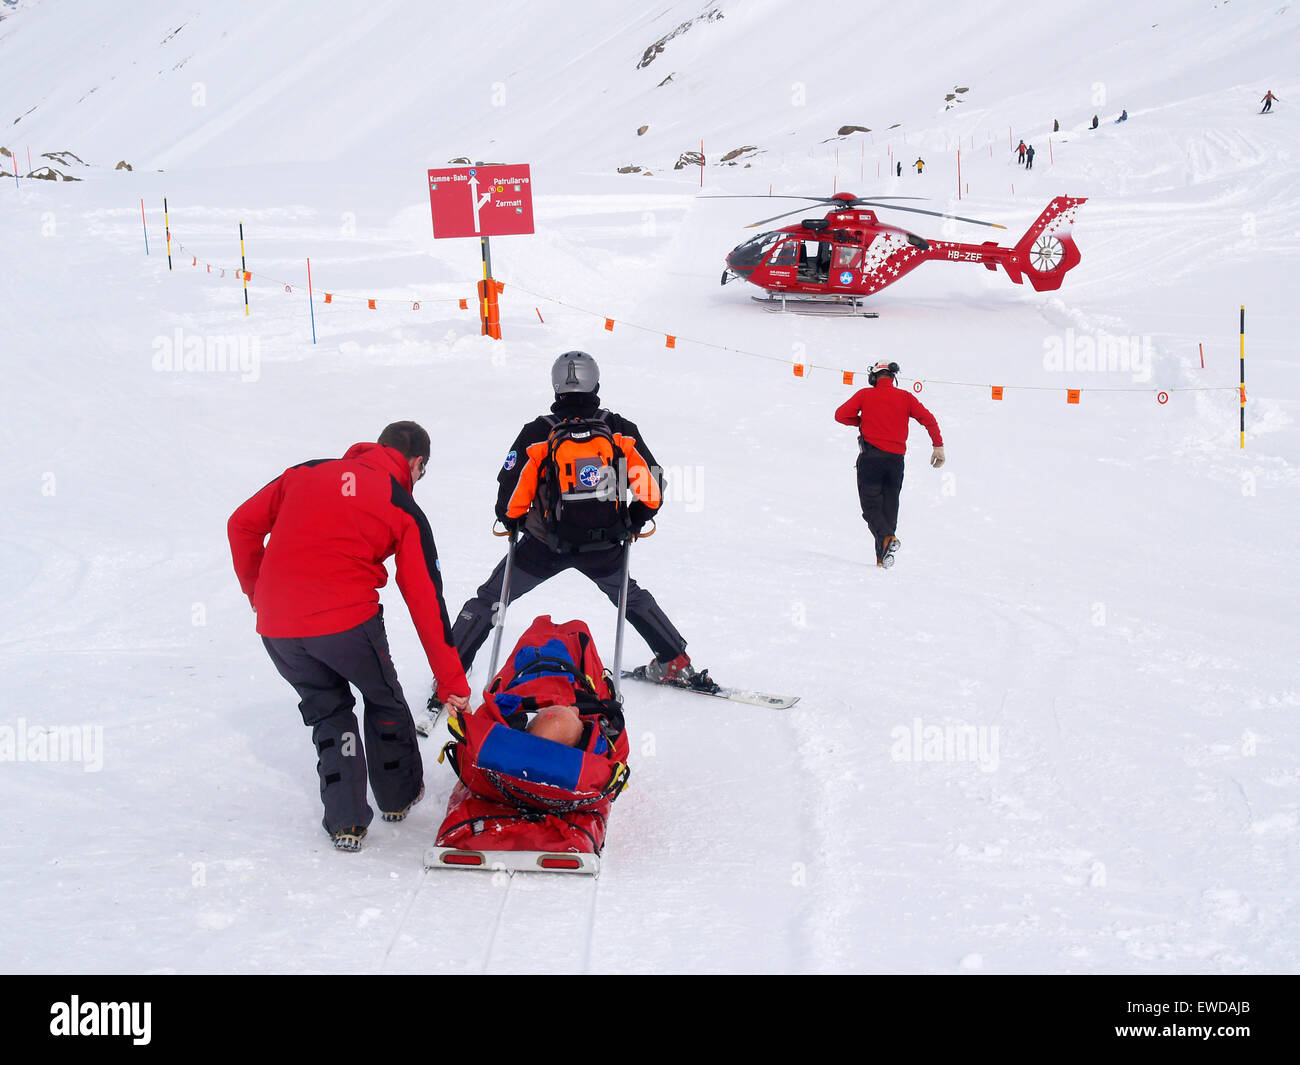 Rescue Personnel is helping an injured skier in the ski area of Zermatt in the Swiss Alps. - Stock Image